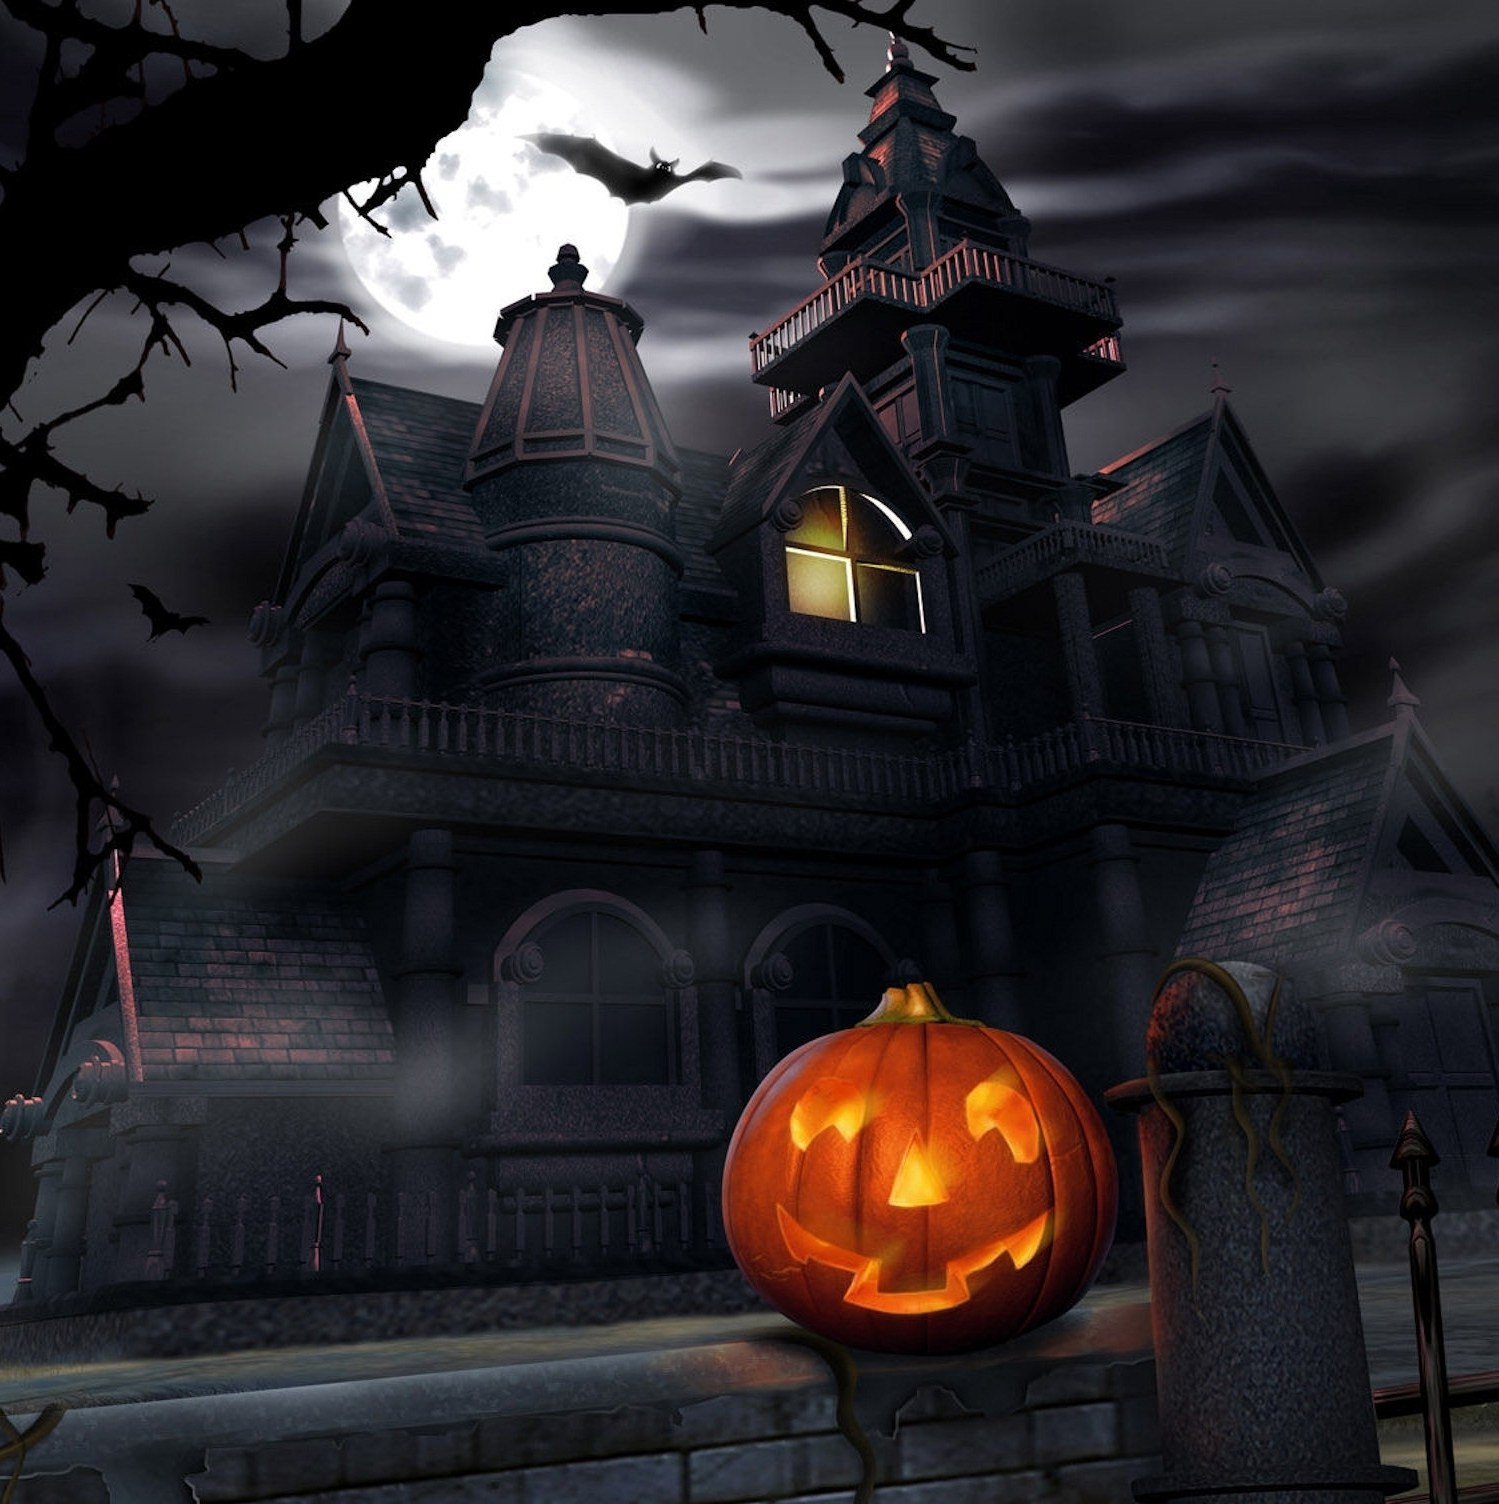 Scary Halloween Hd Images